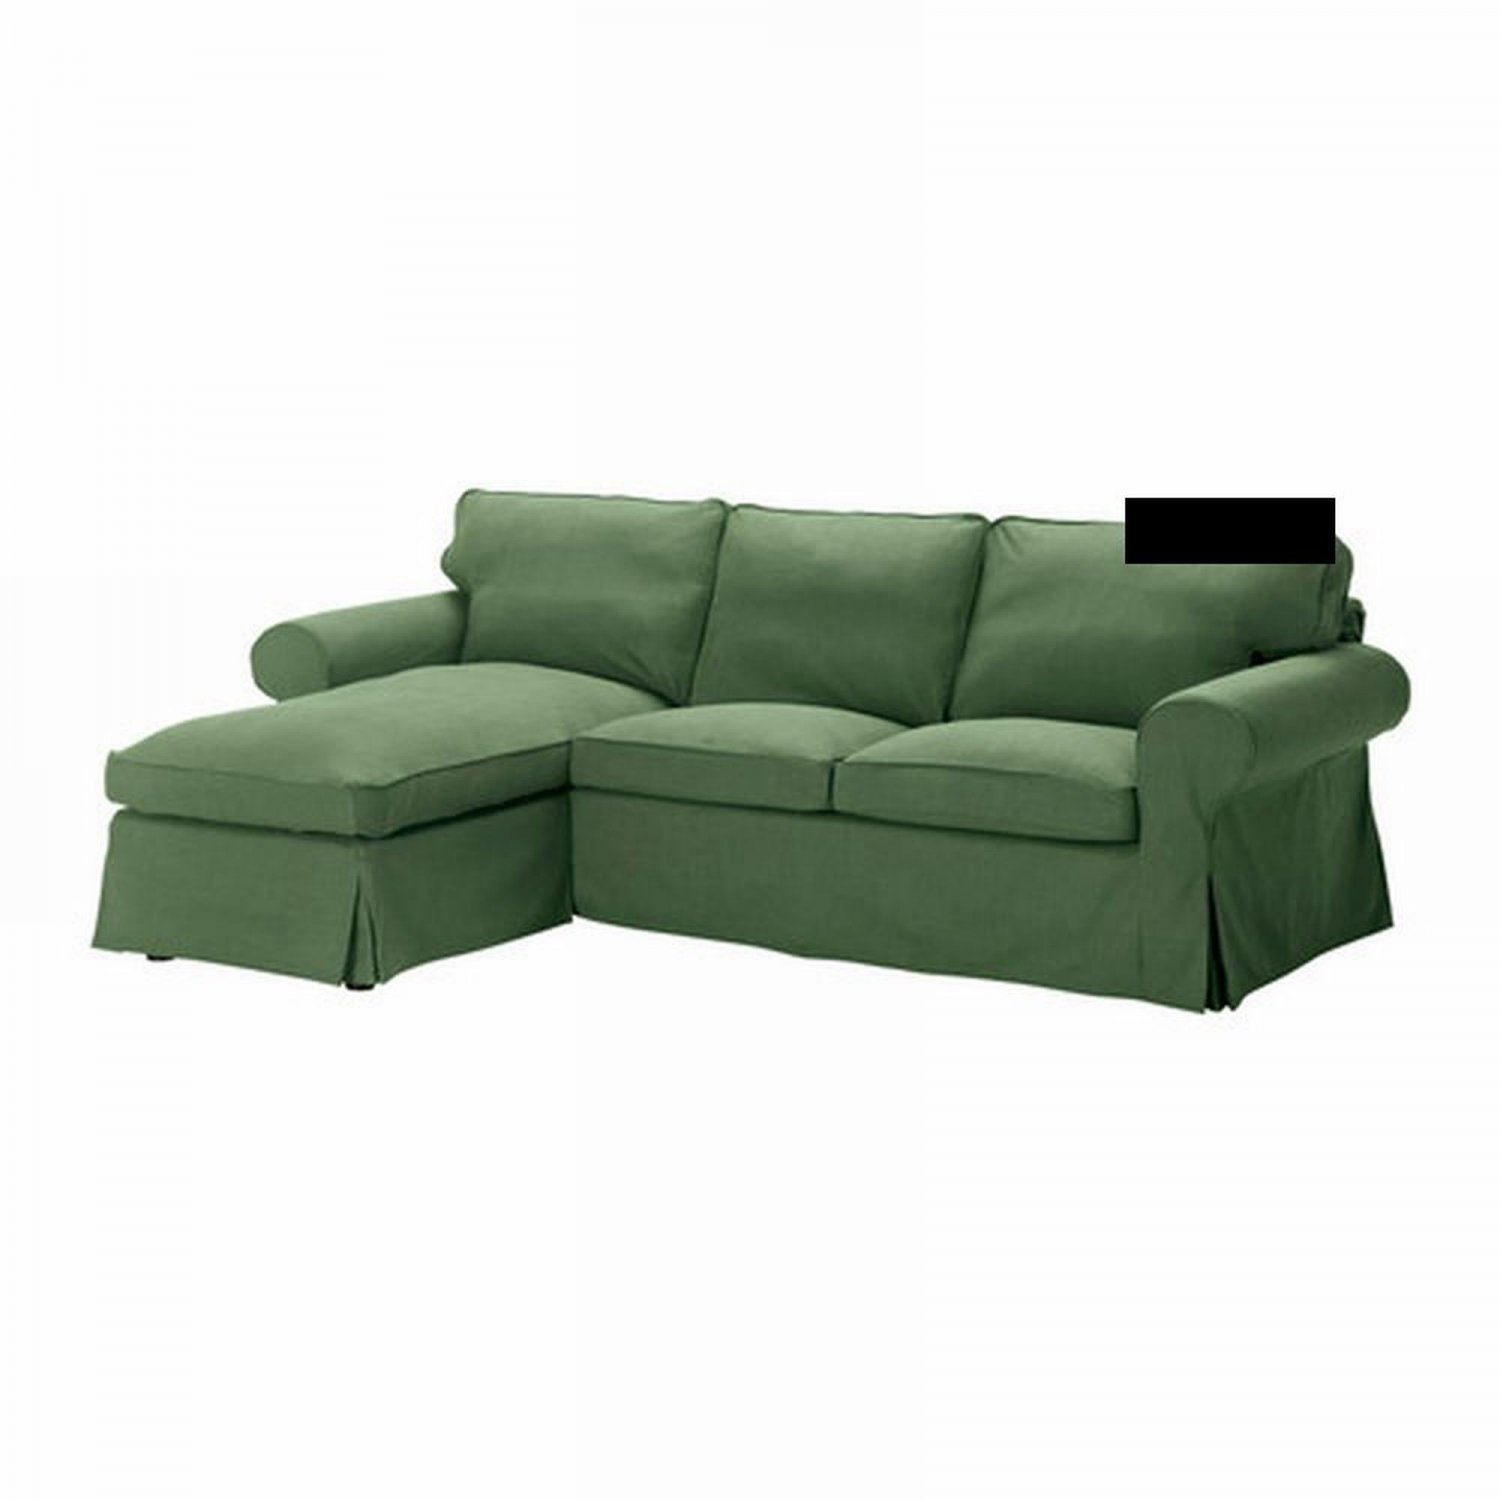 ikea karlanda sofa covers uk wooden designs pictures latest ektorp 2 seat loveseat w chaise cover 3